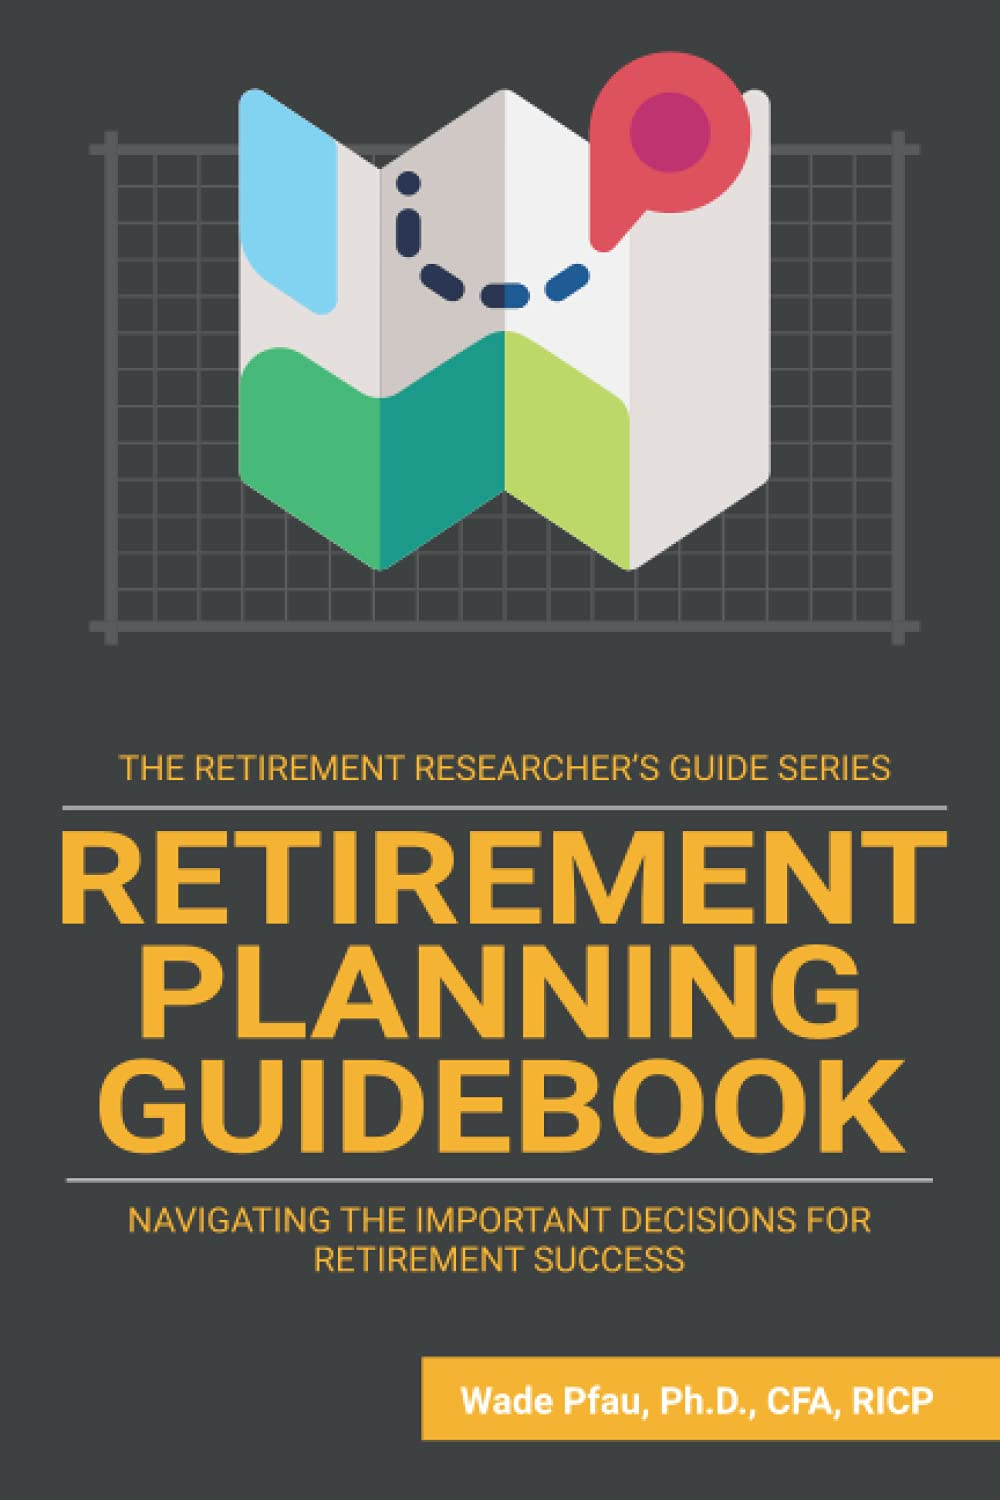 Retirement Planning Guidebook: Navigating the Important Decisions for Retirement Success